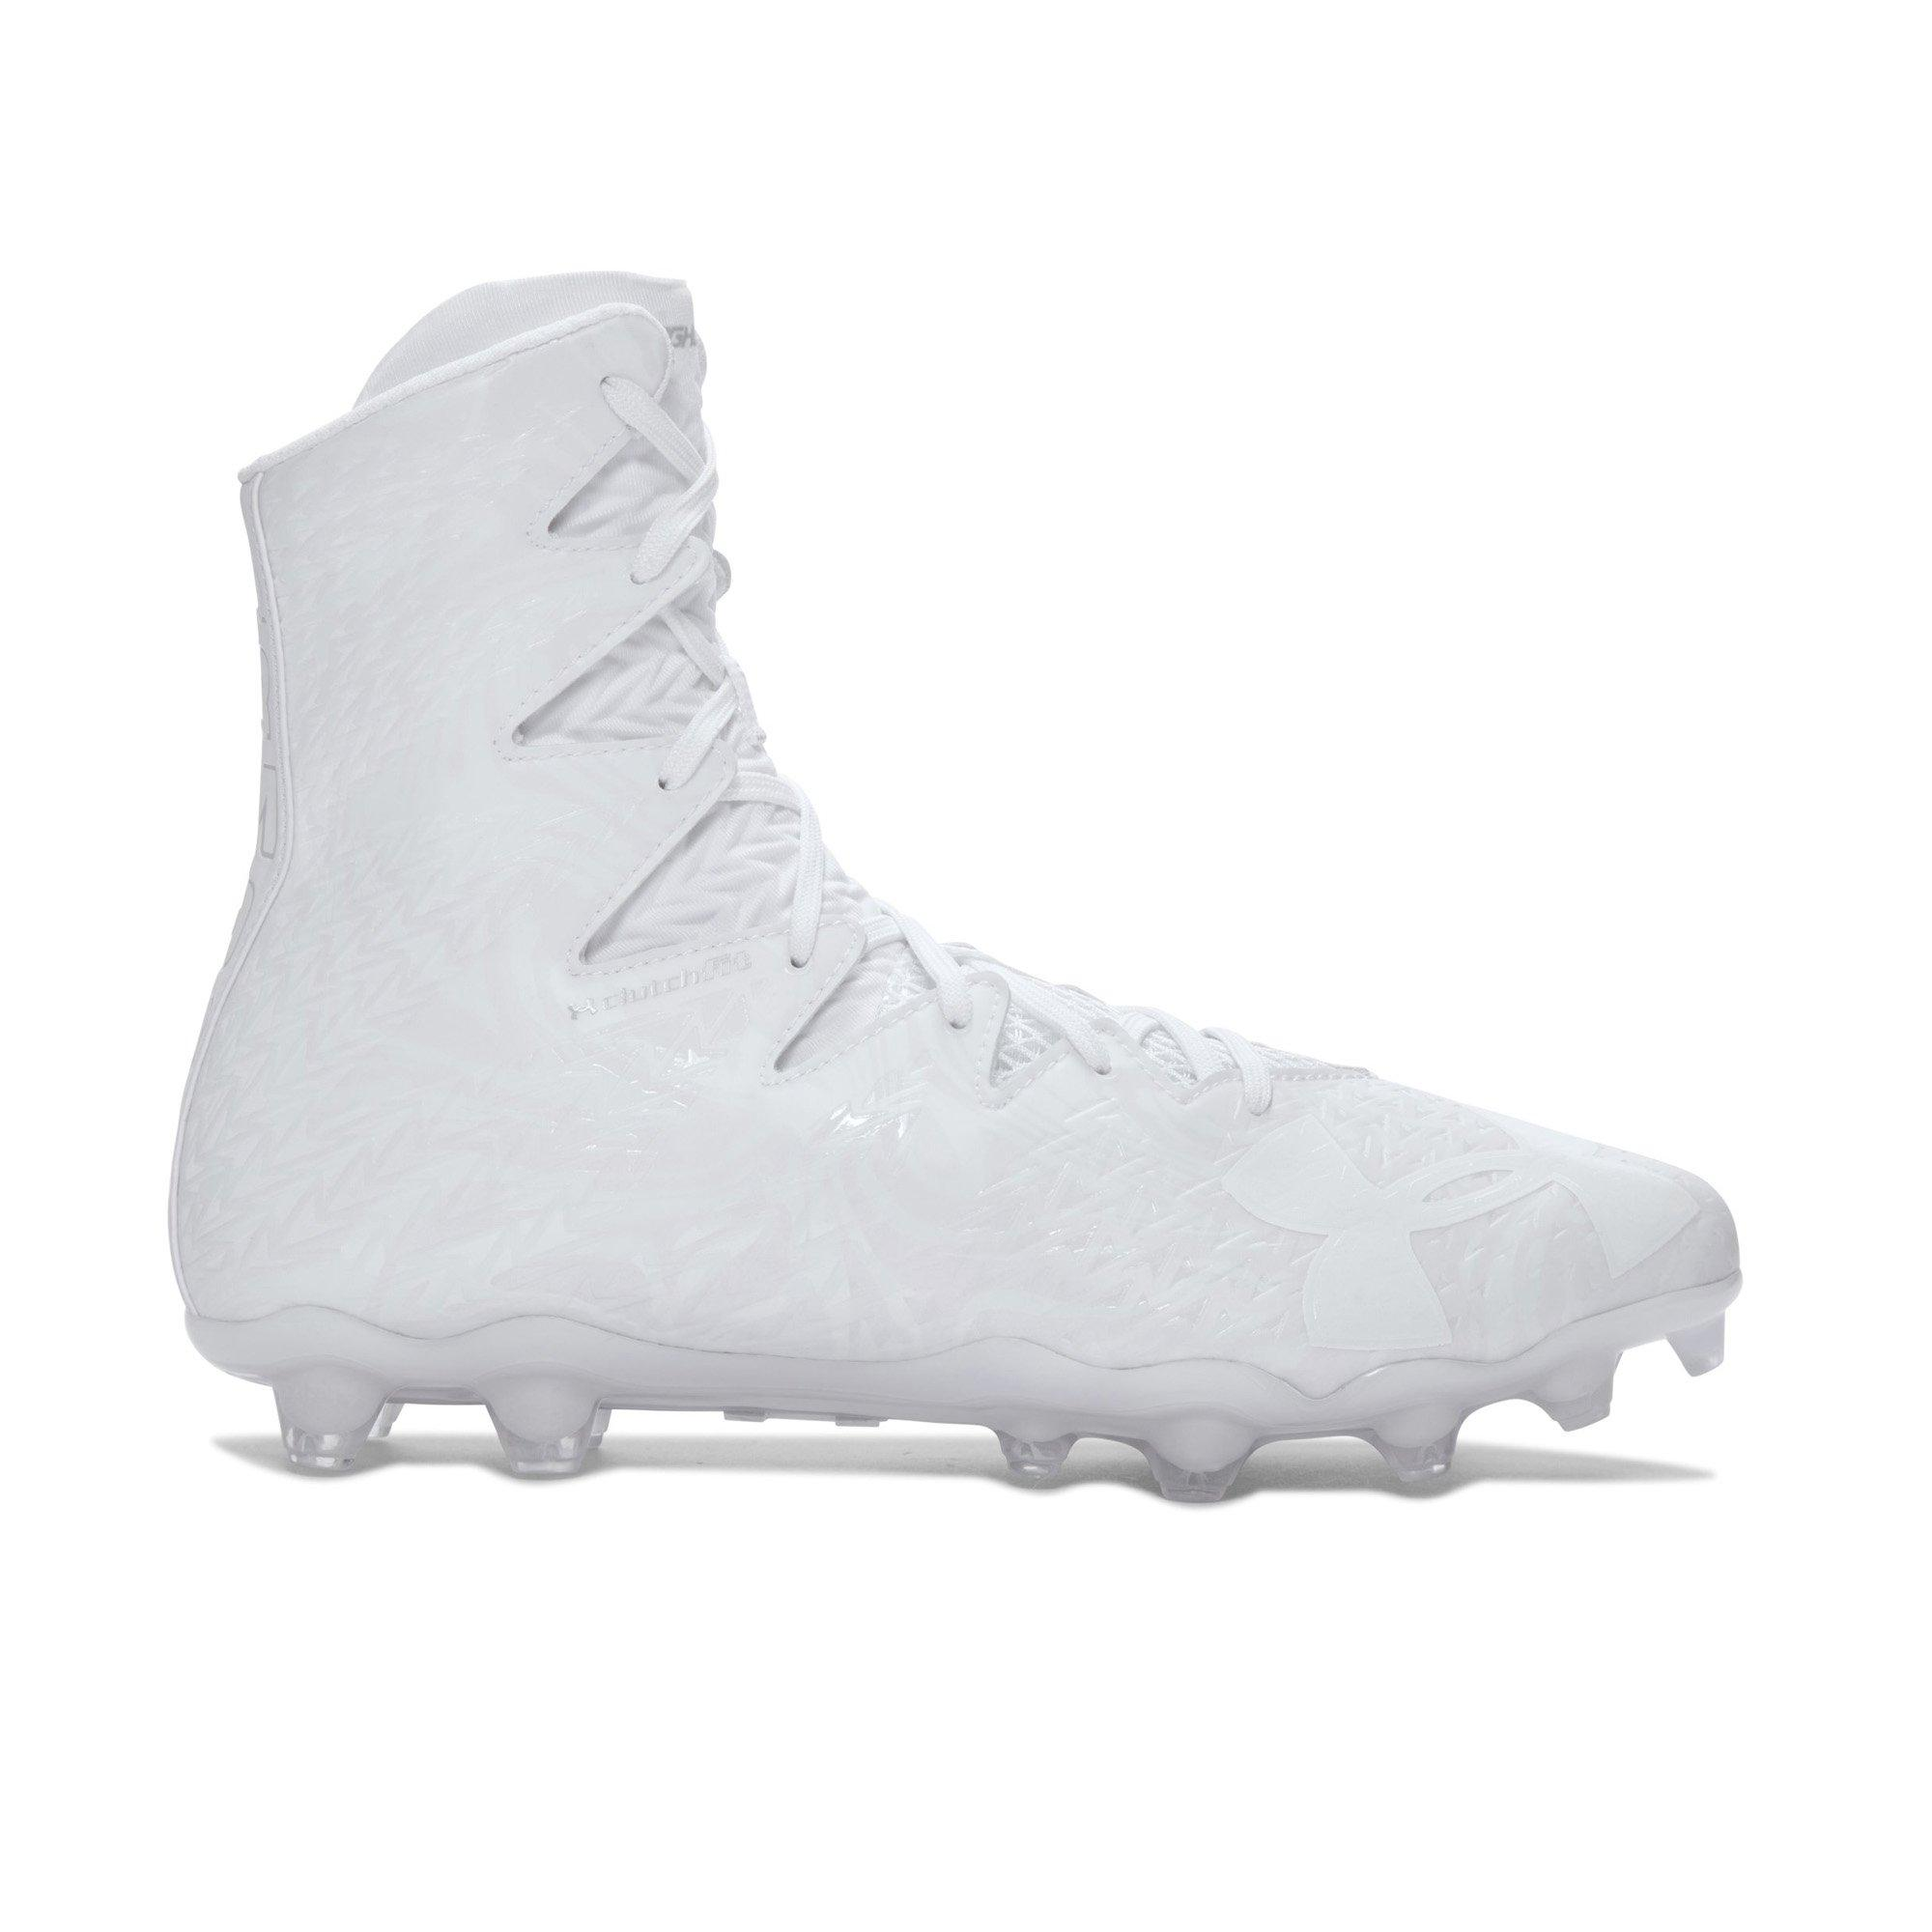 ... Mens Football Cleats - WHITE/SILVER. 4.6 out of 5 stars. Read reviews.